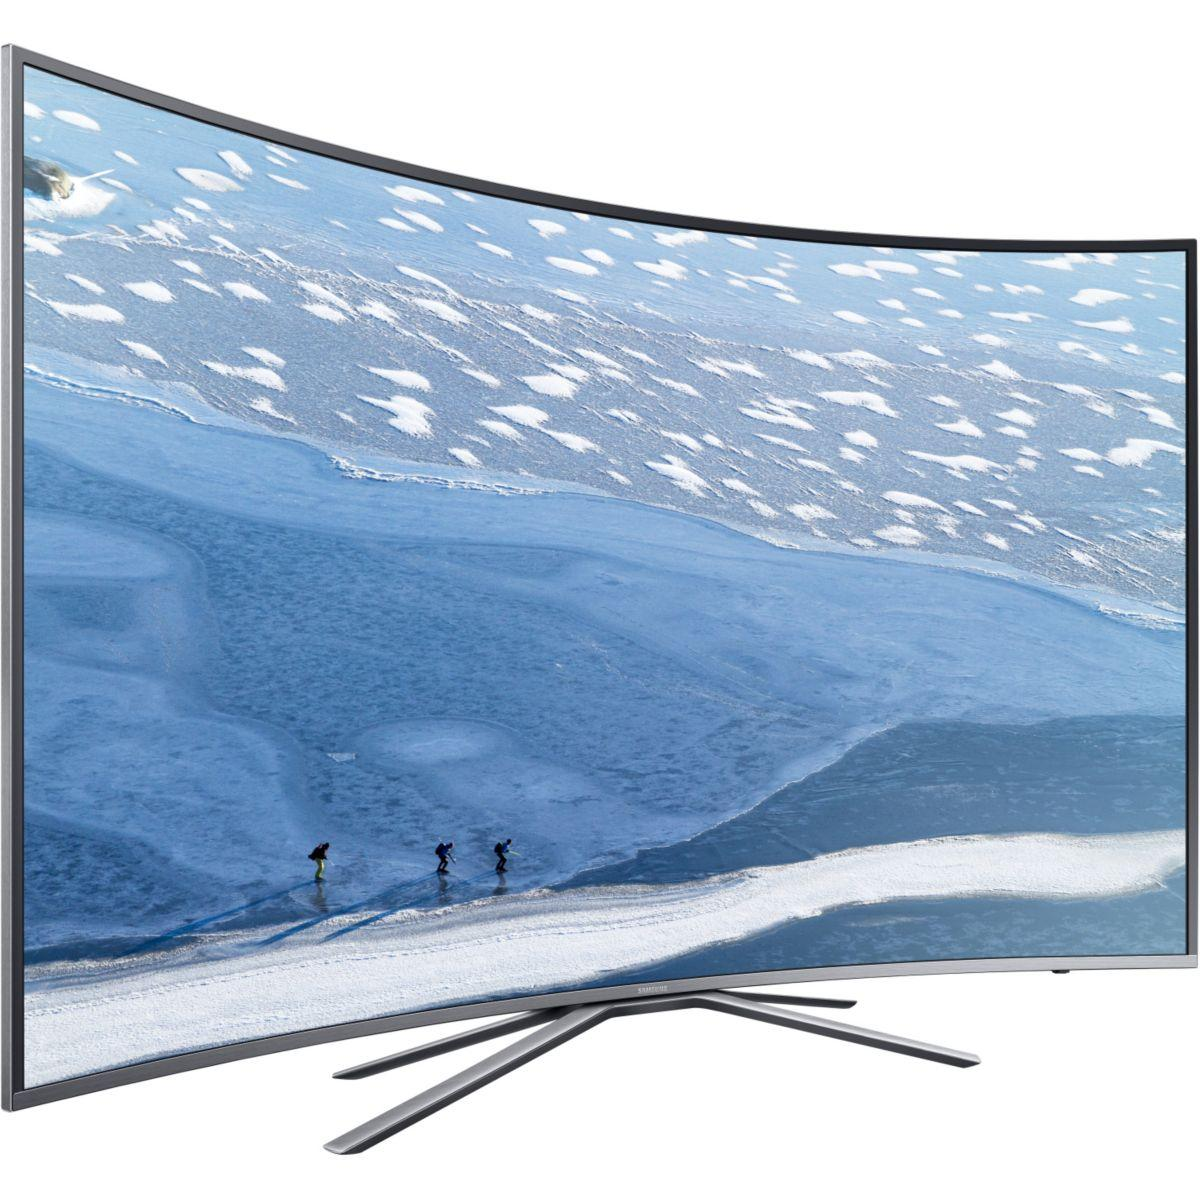 TV SAMSUNG UE43KU6500 UHD 1600 PQI SMART TV